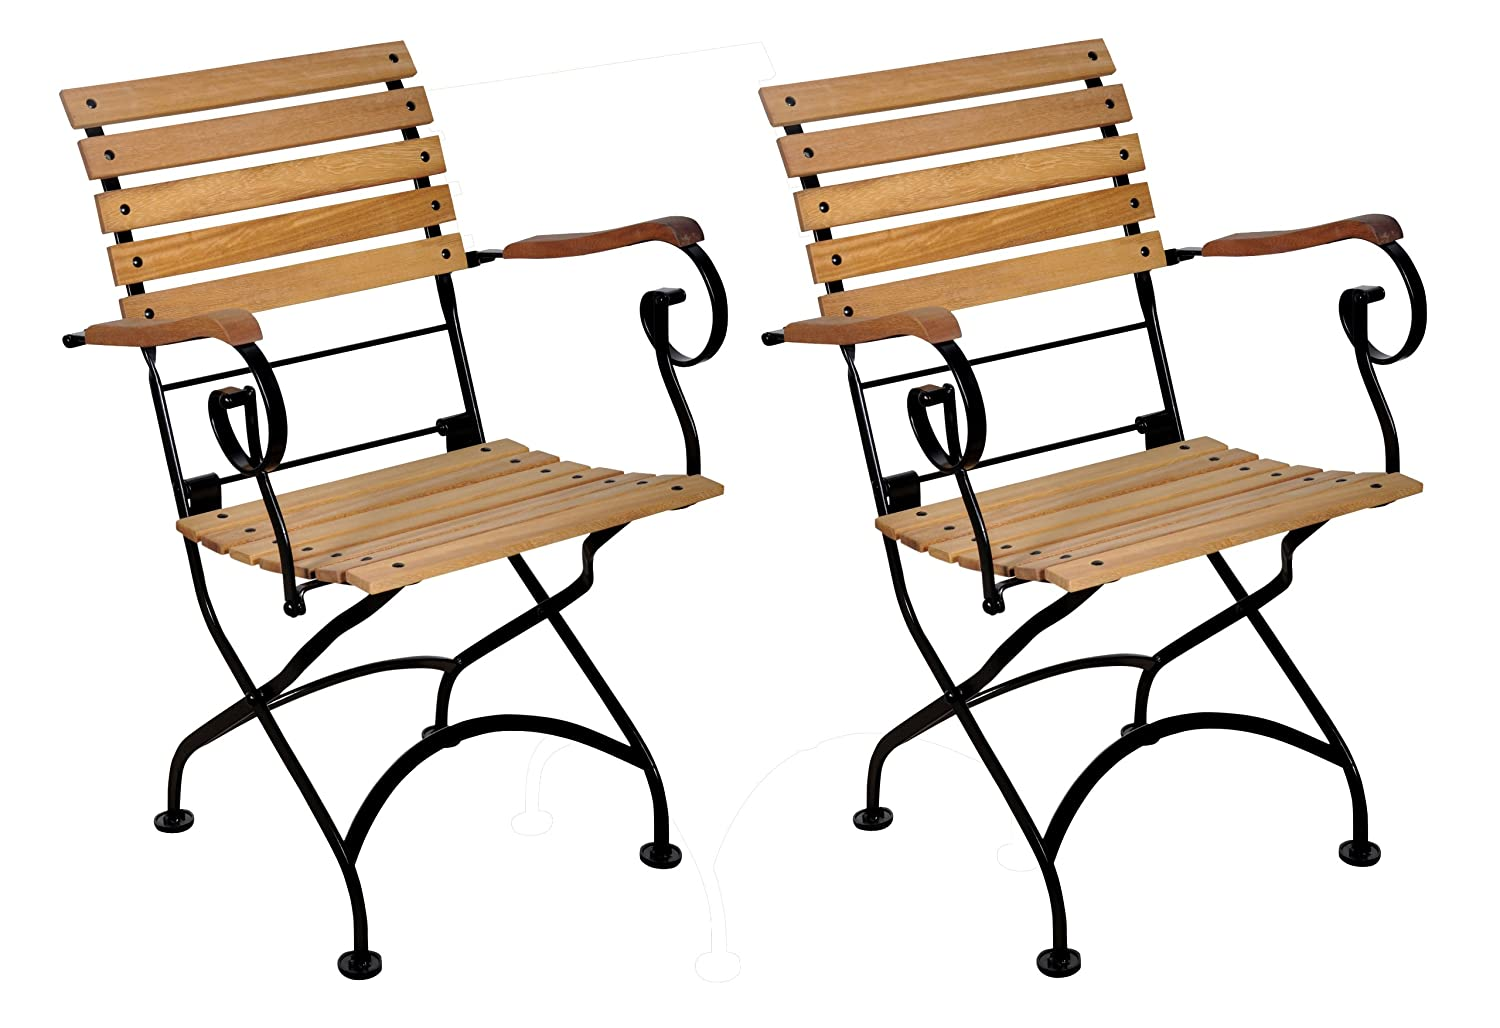 Amazon.com : Mobel Designhaus French Café Bistro Folding Armchair, Jet  Black Frame, African Teak Wood Slats (Pack Of 2) : Folding Chairs : Patio,  ...